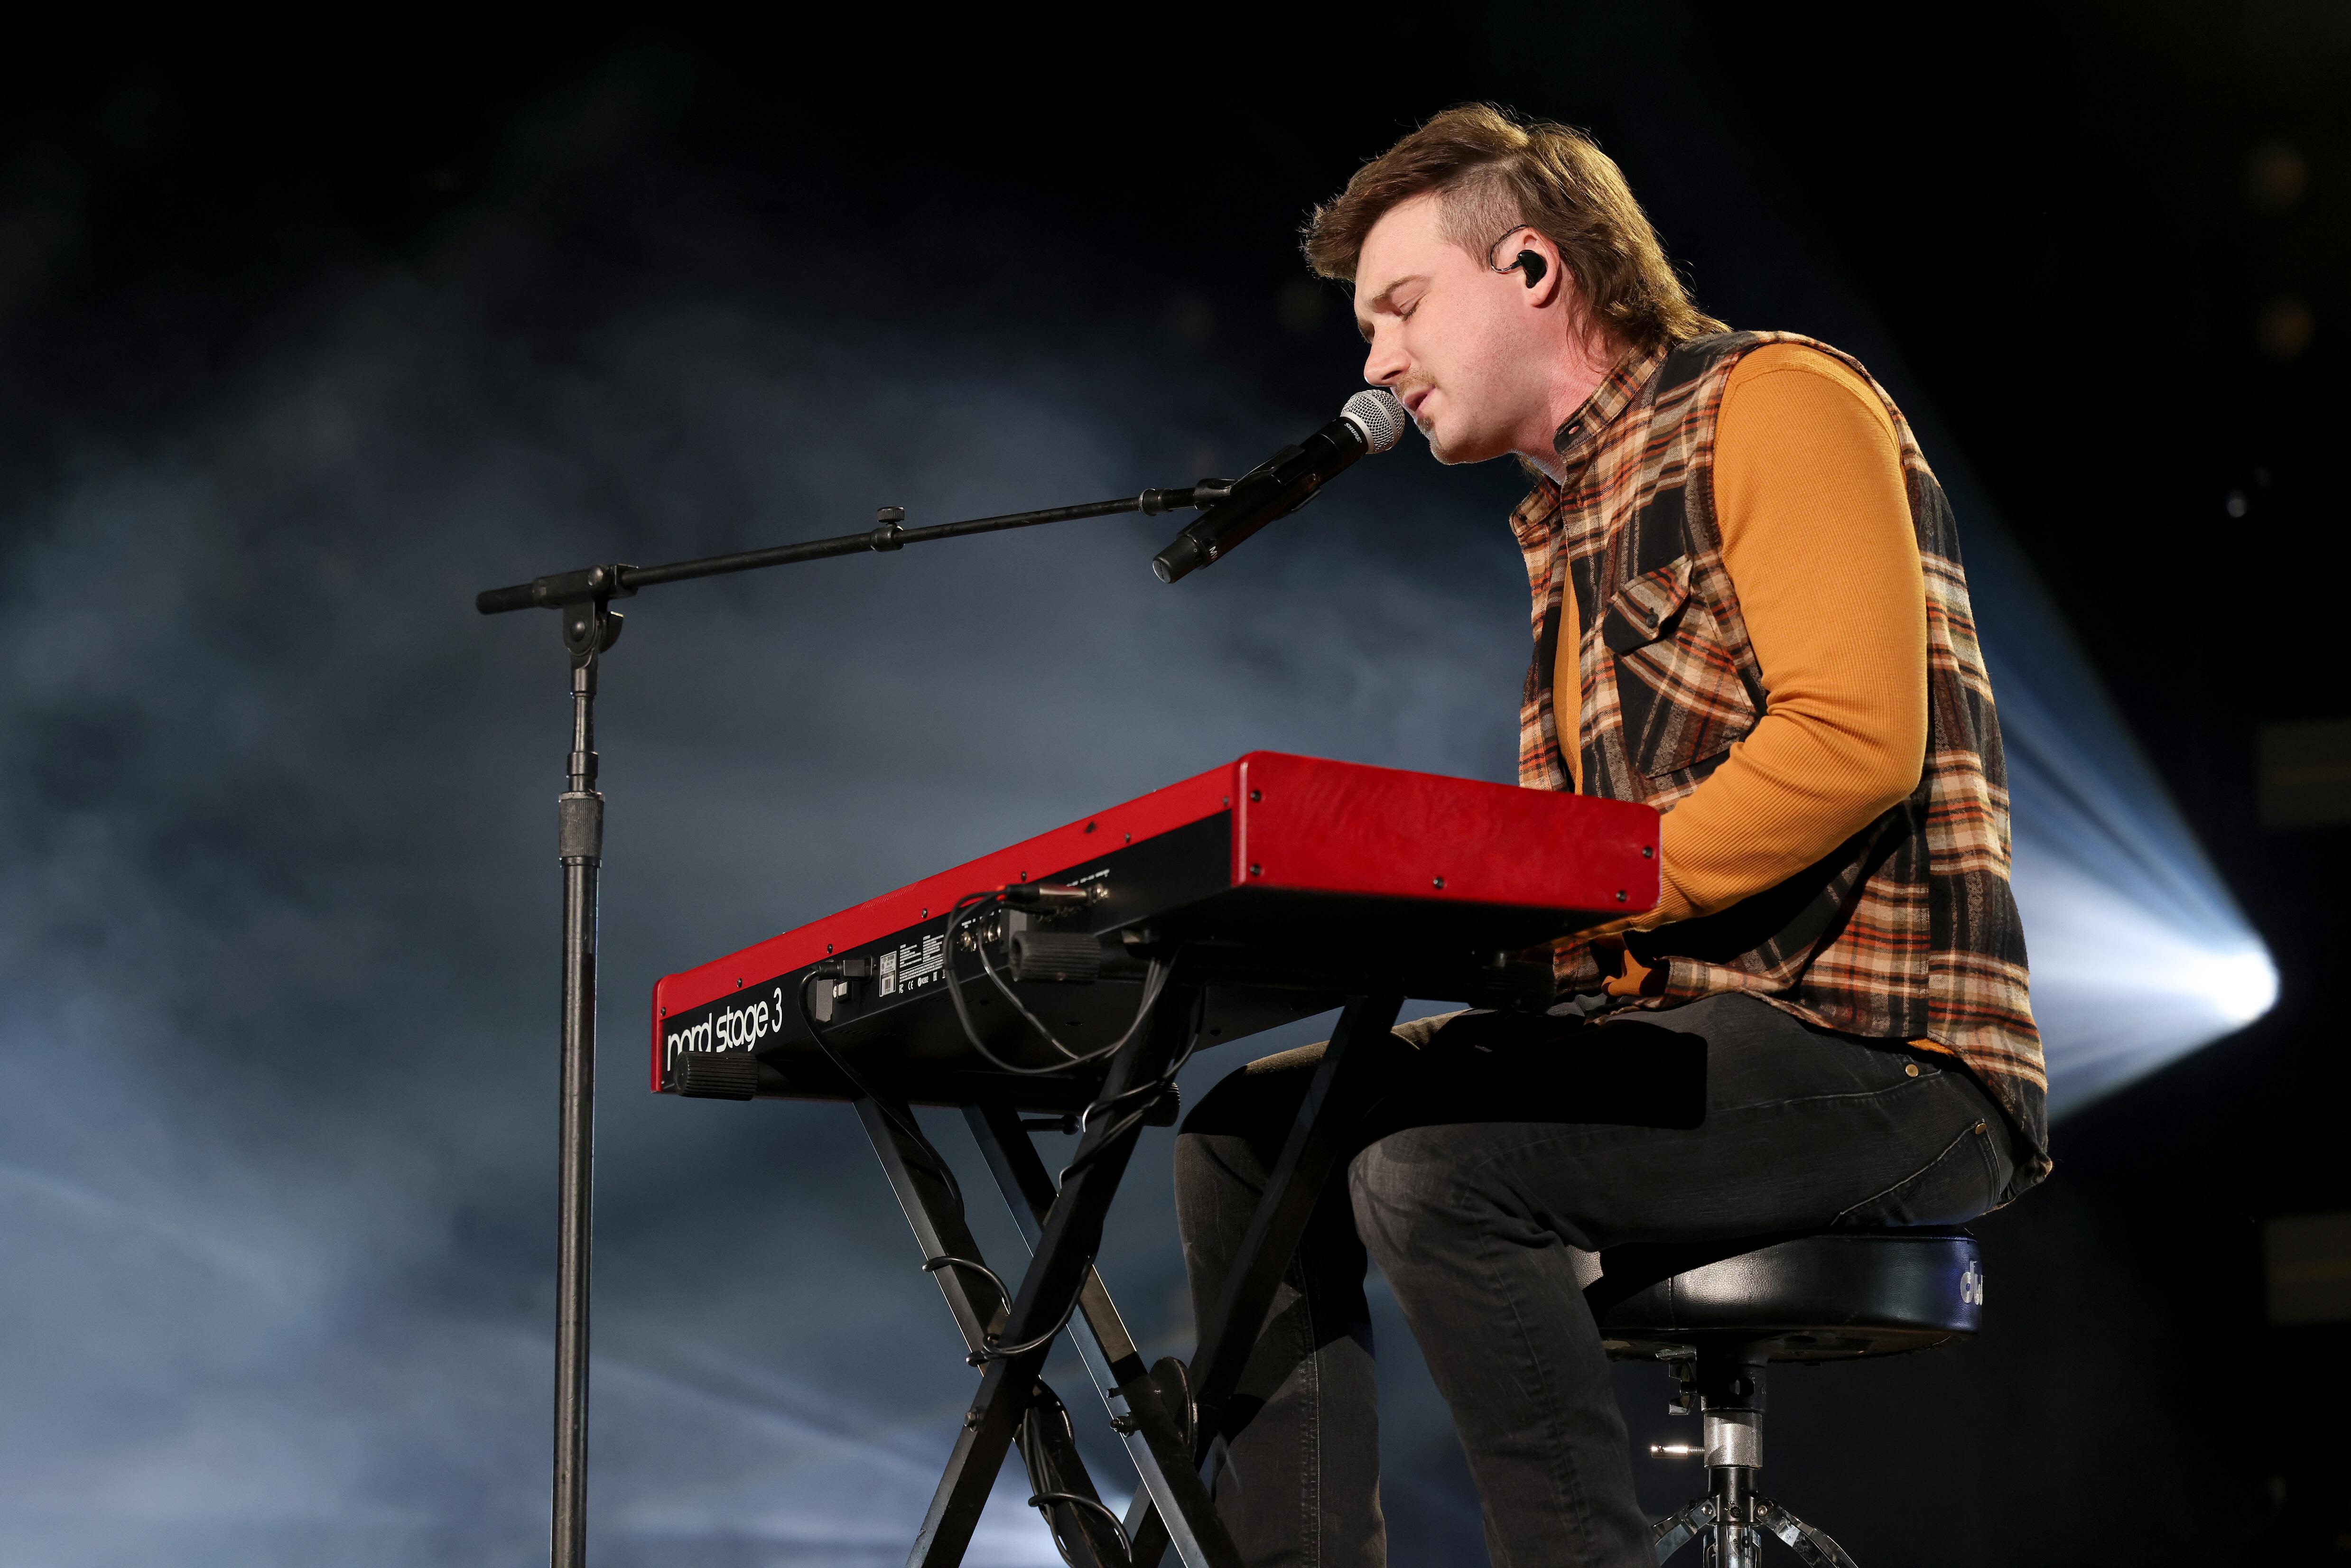 Morgan Wallen says he was using racial slur 'playfully,' but knows it's wrong